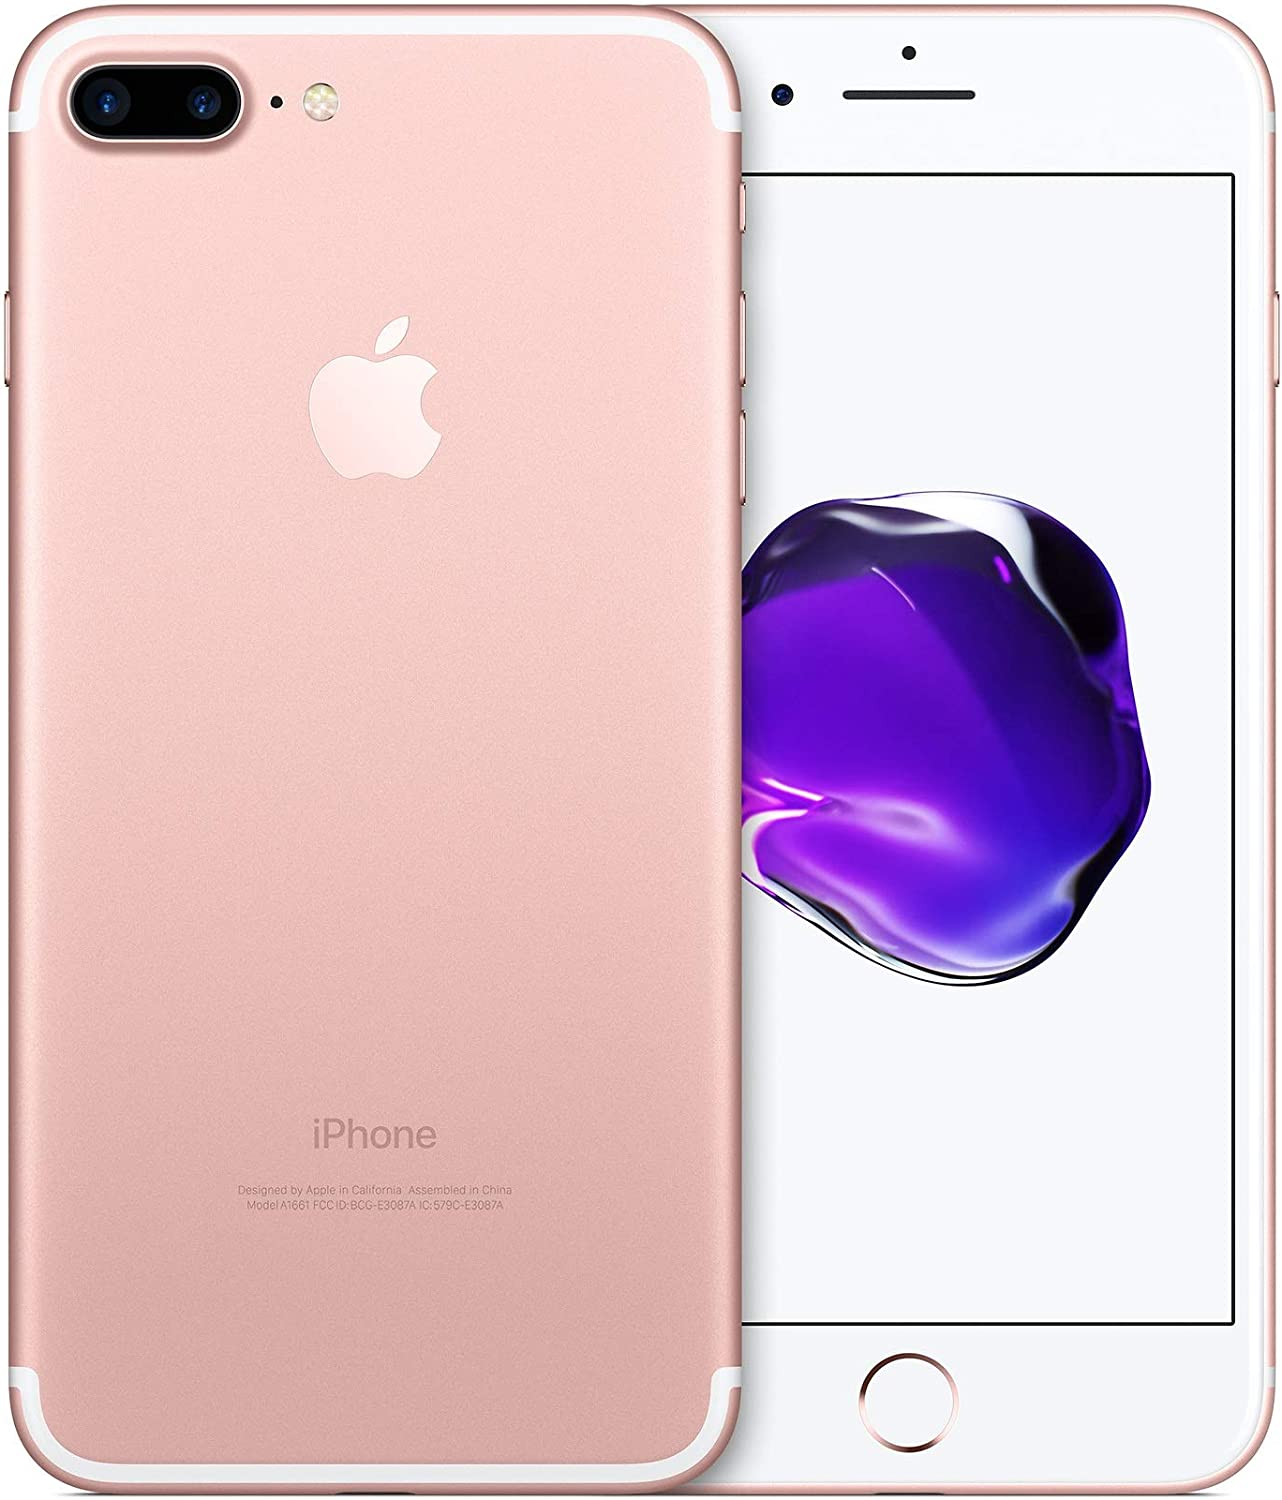 Apple Iphone 7 Plus 128gb Rose Gold For T Mobile Renewed